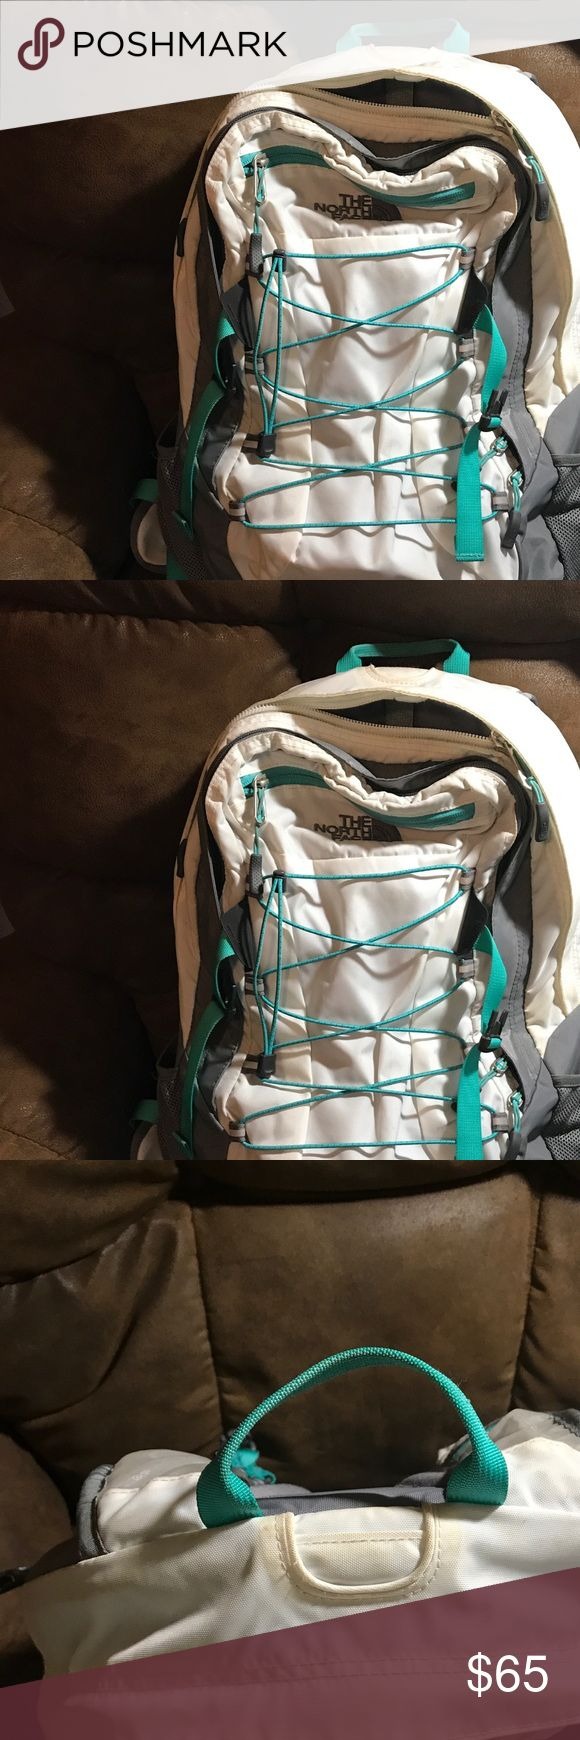 North Face Backpack! Has been used and loved! Used for a year in school.  Has some discoloration around zipper and small hold in side pocket from pencil. North Face Bags Backpacks